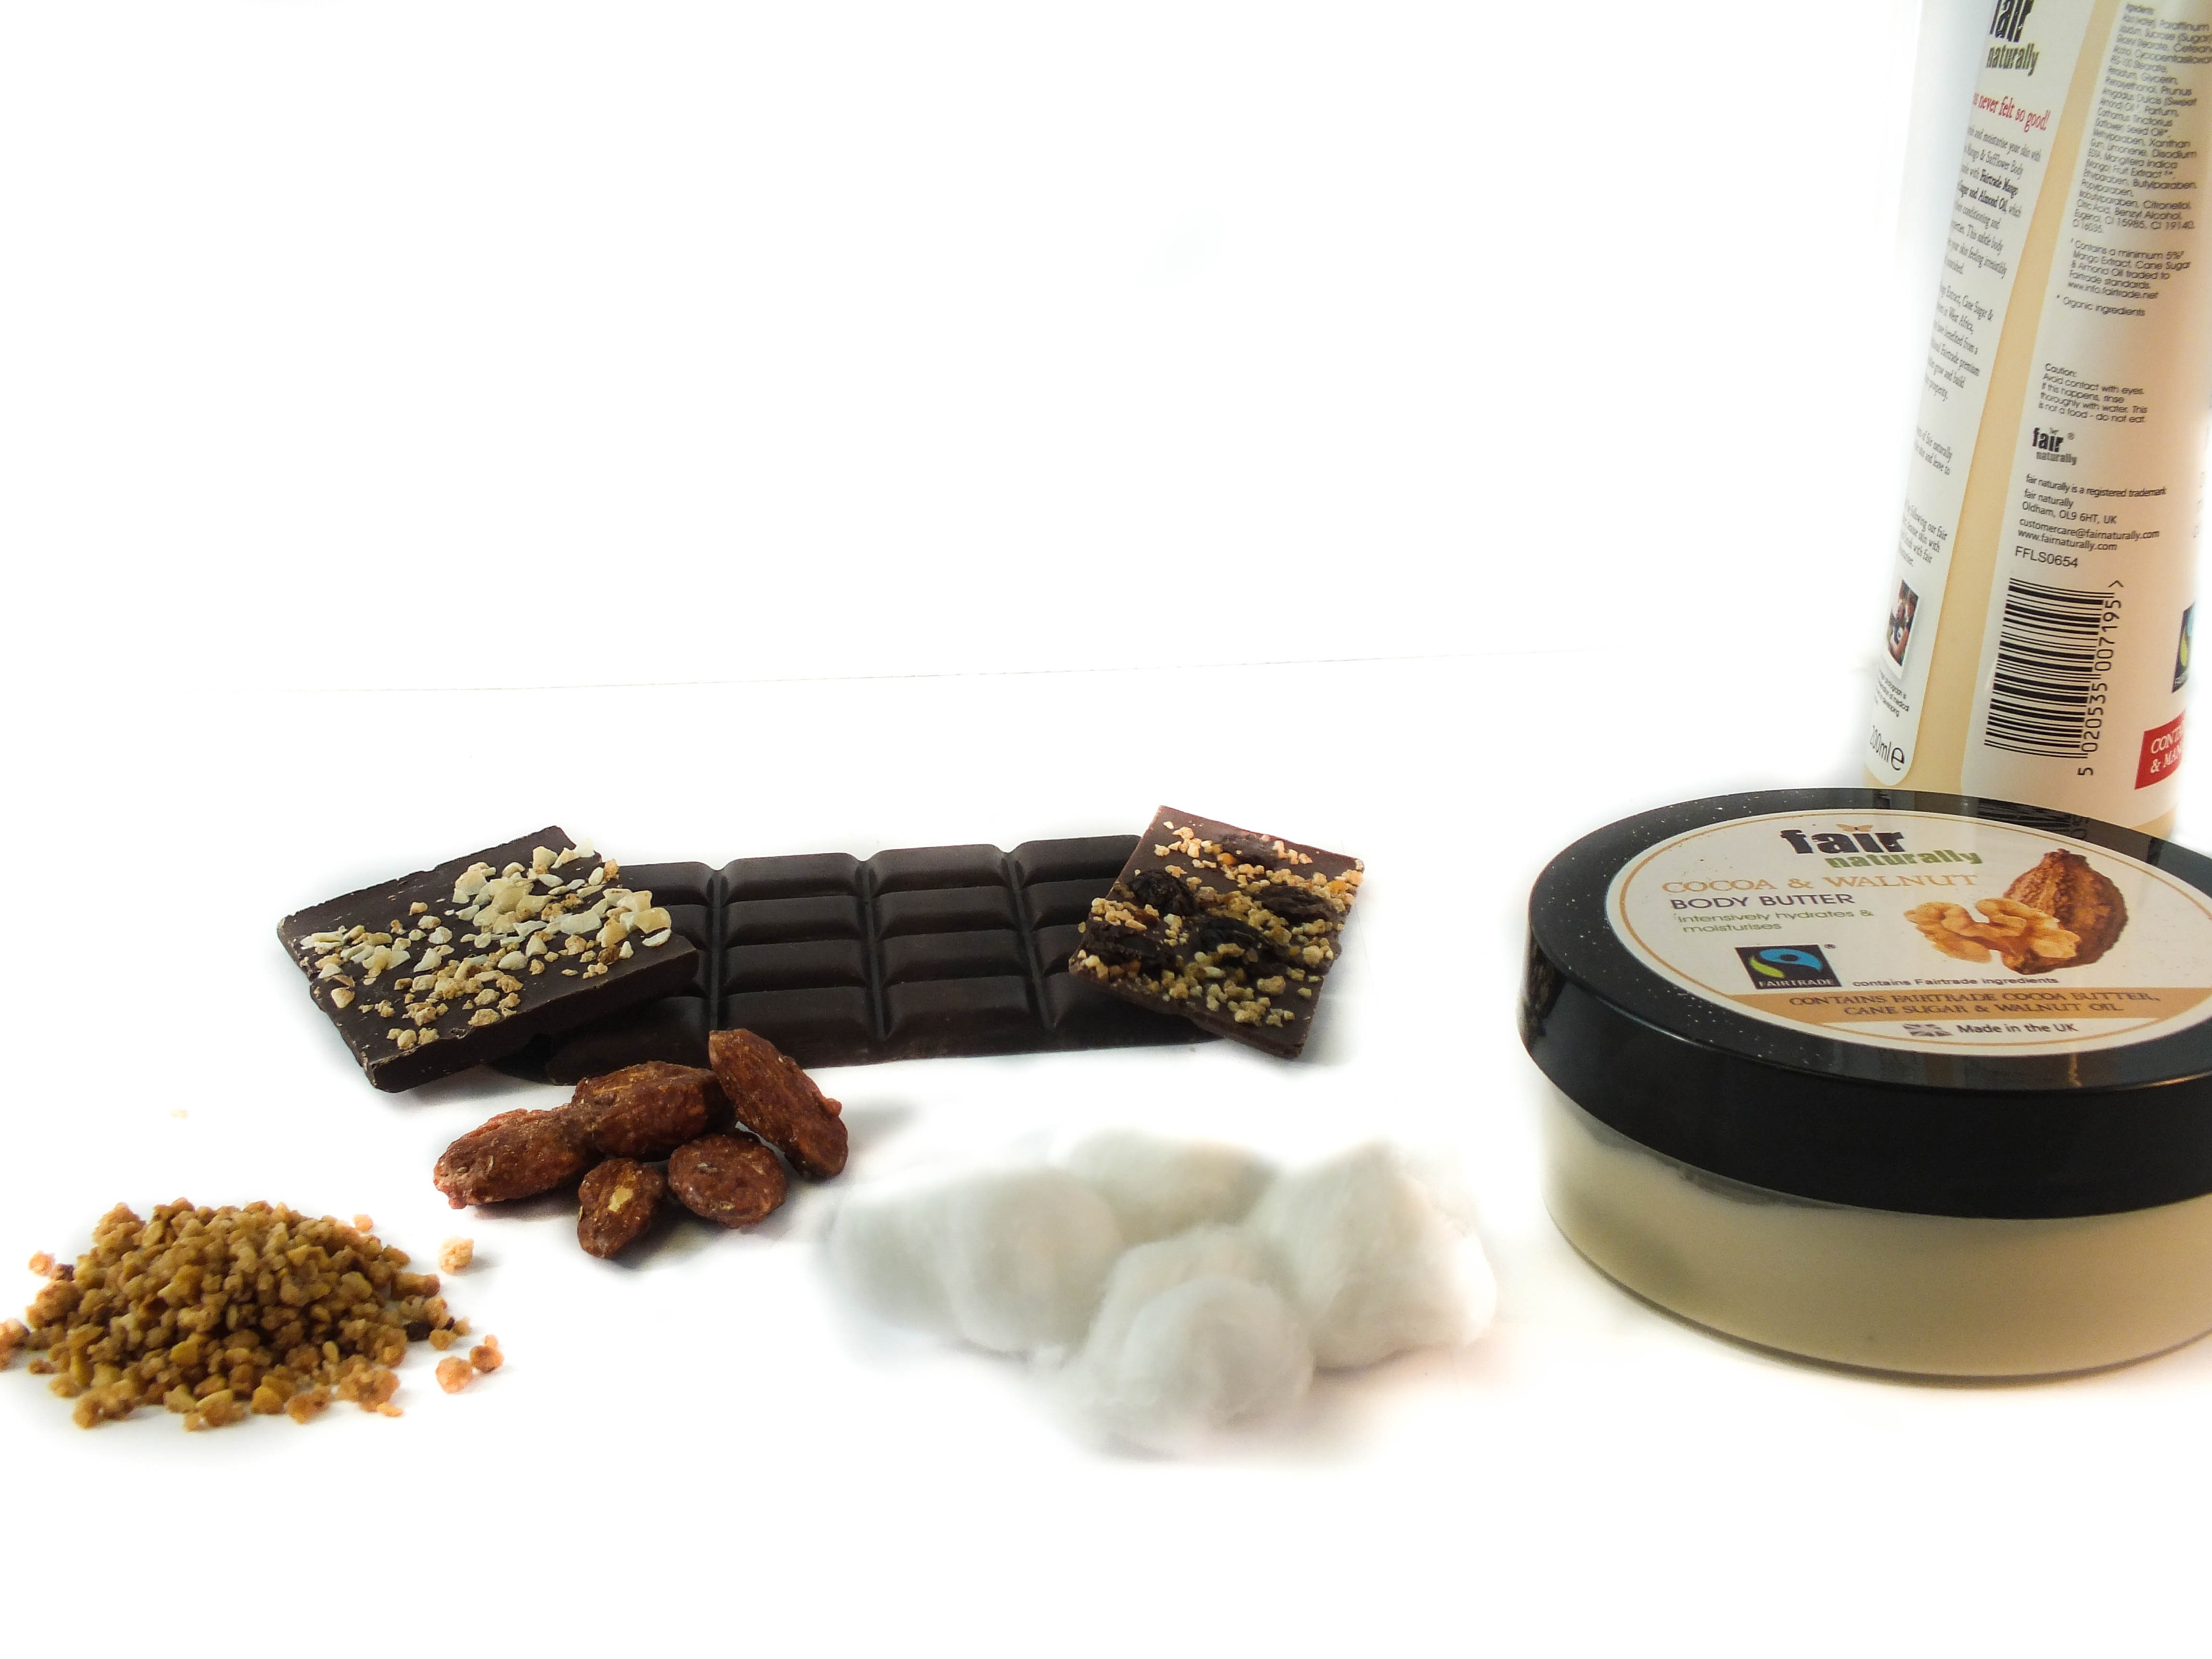 The Cocoa and Nut Mini Luxury collection